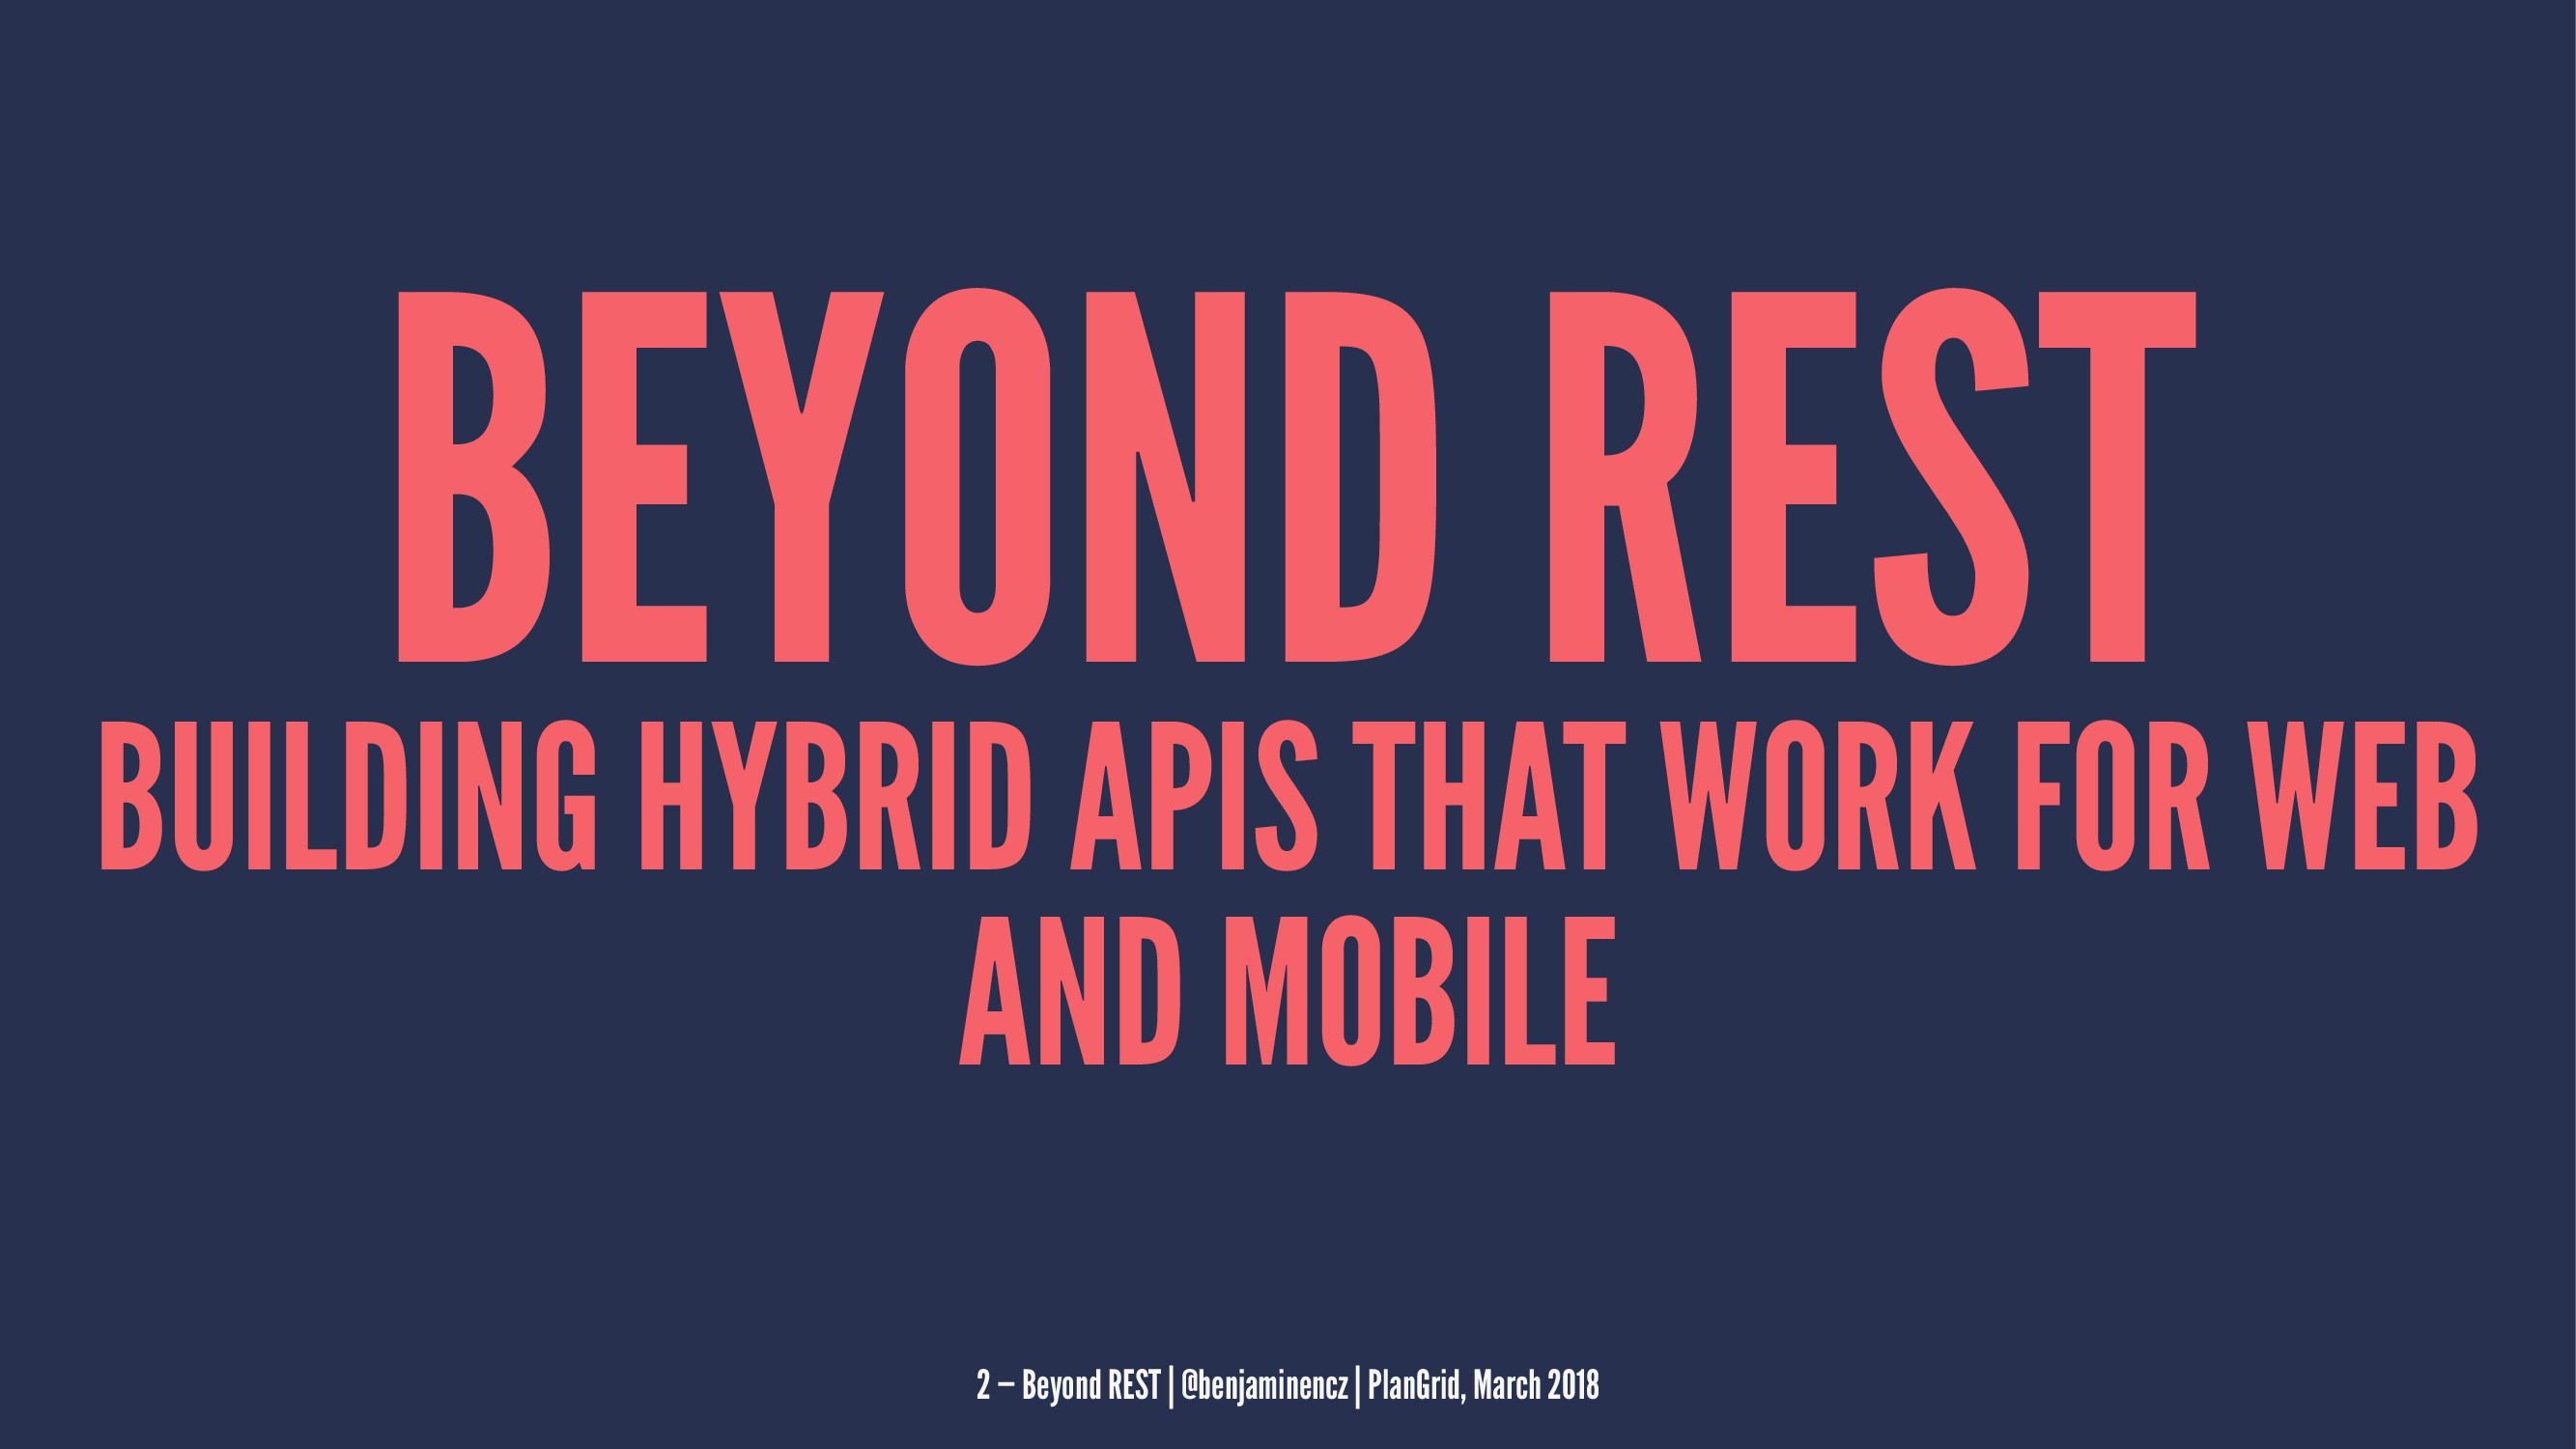 BEYOND REST BUILDING HYBRID APIS THAT WORK FOR ...